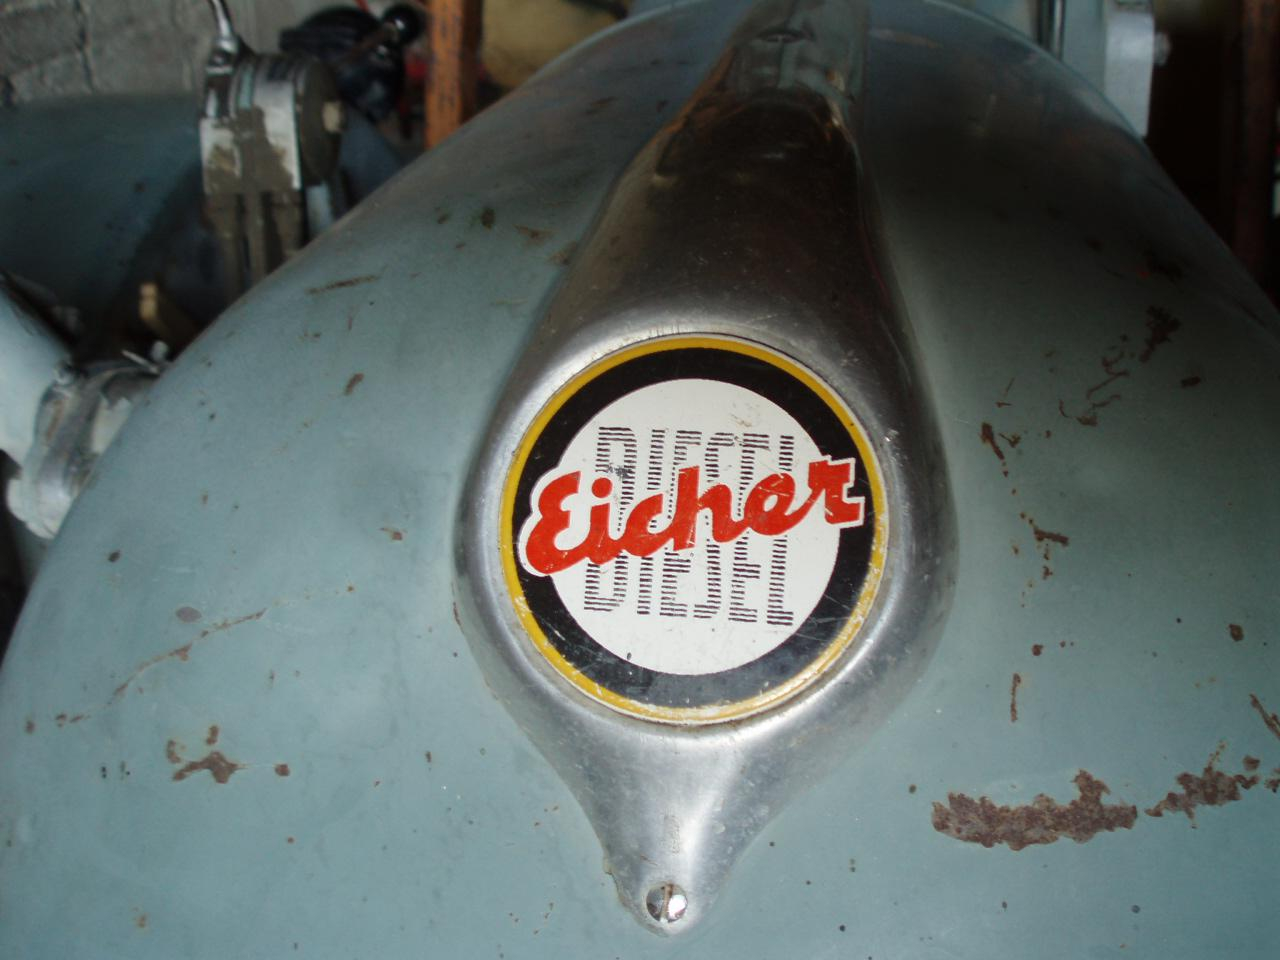 more EICHER